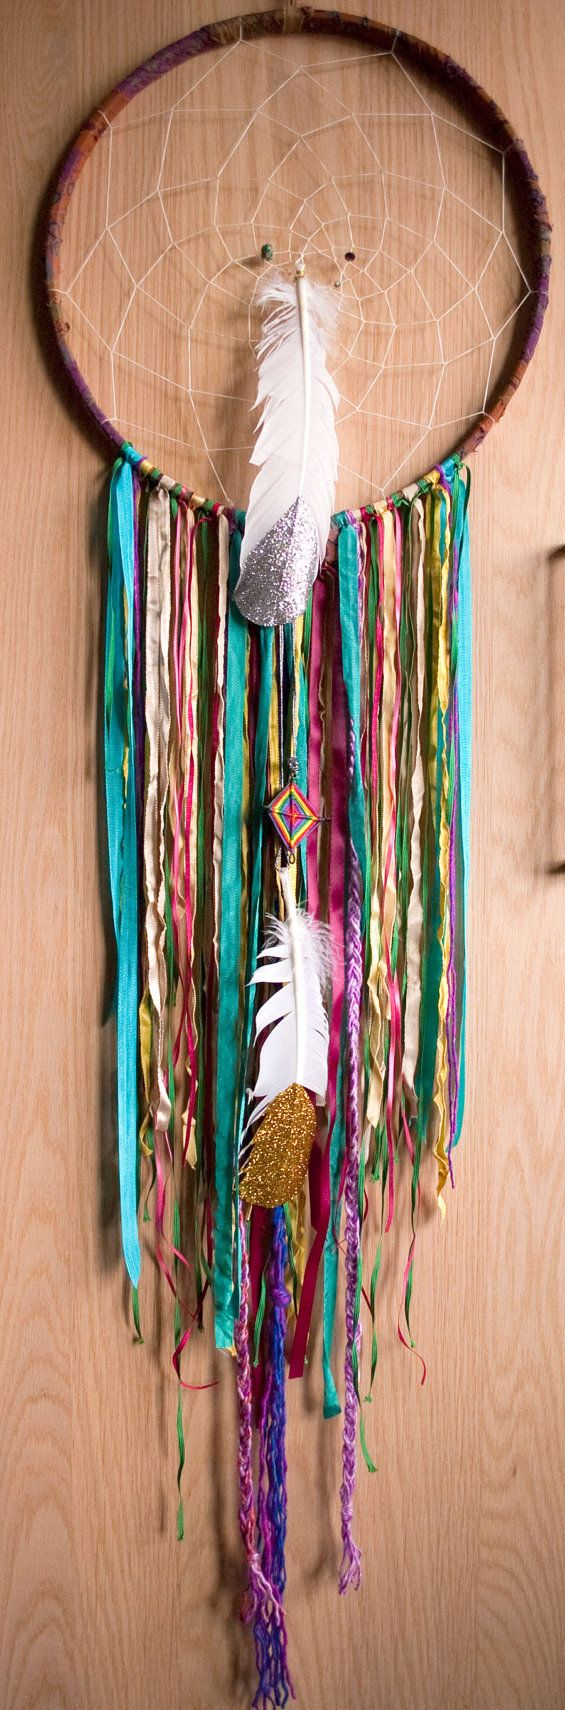 Bohemian Spirit Dreamcatcher | The small girl needs a new dreamcatcher